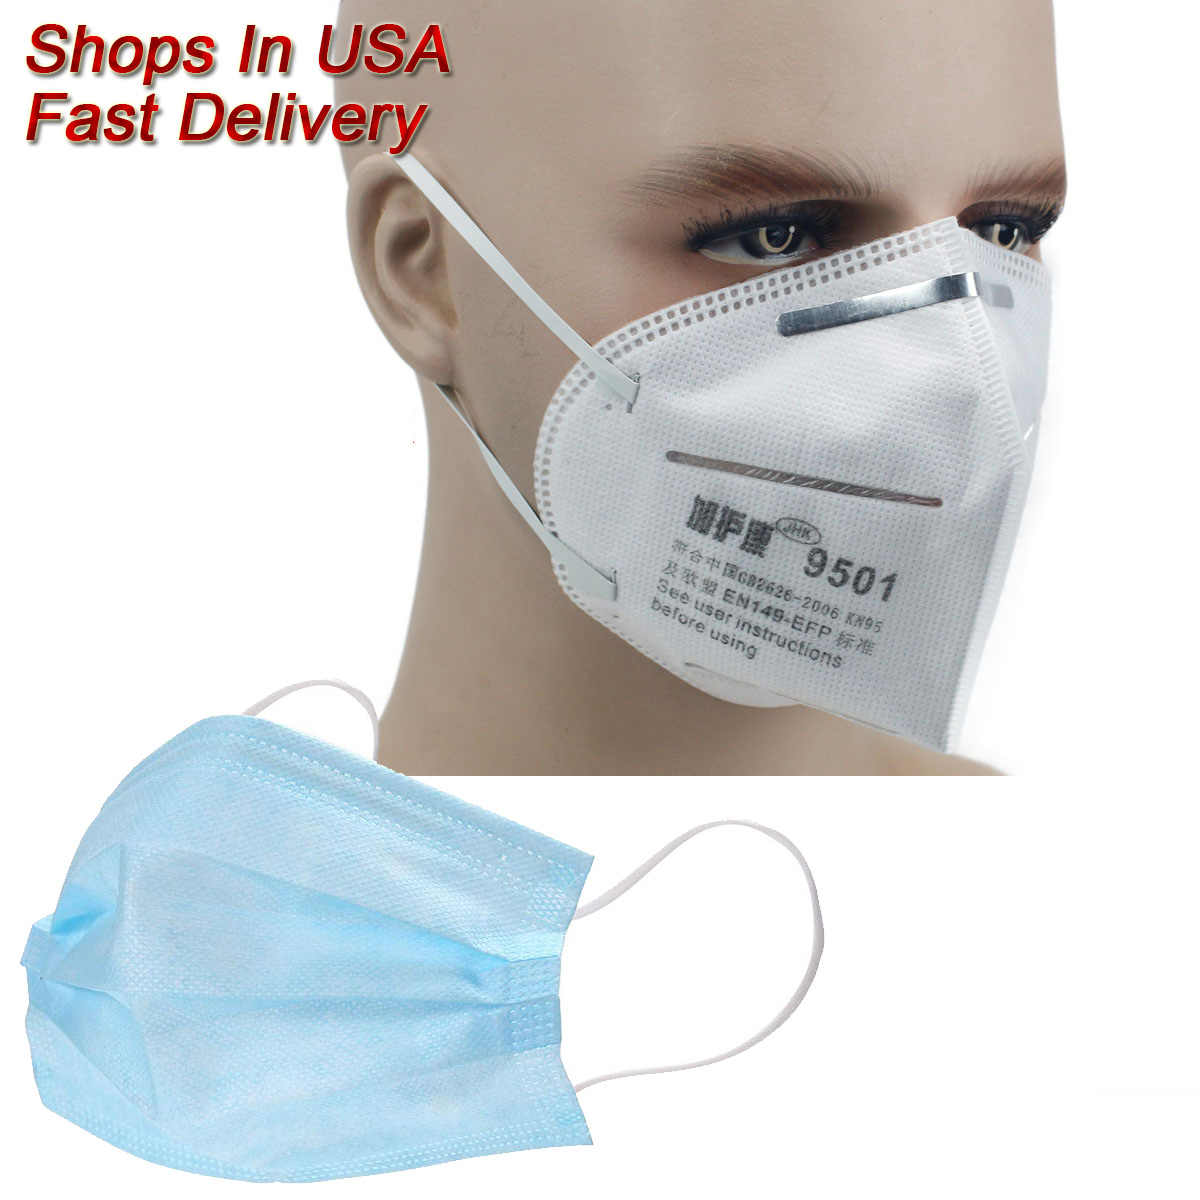 USA In Stock 50pcs Disposable Face Mask 3 Layer Filter Masks N95 Epidemic Protection PM2.5 Face Mask Flu Respirator For Stylist